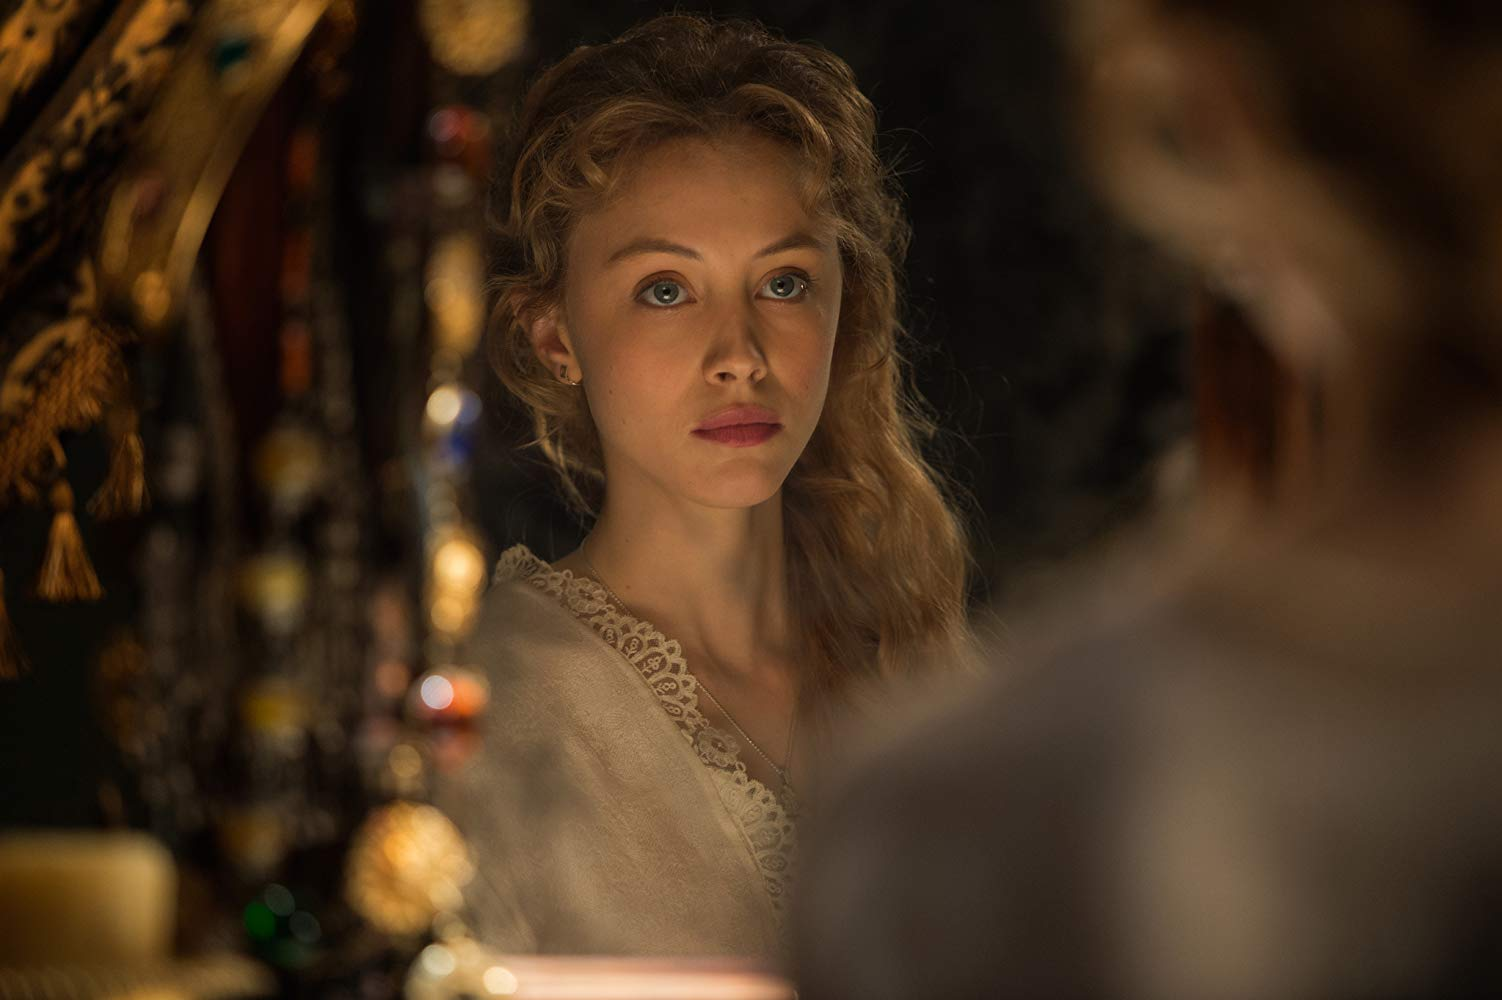 Sarah Gadon as Mirena in Dracula Untold (2014)